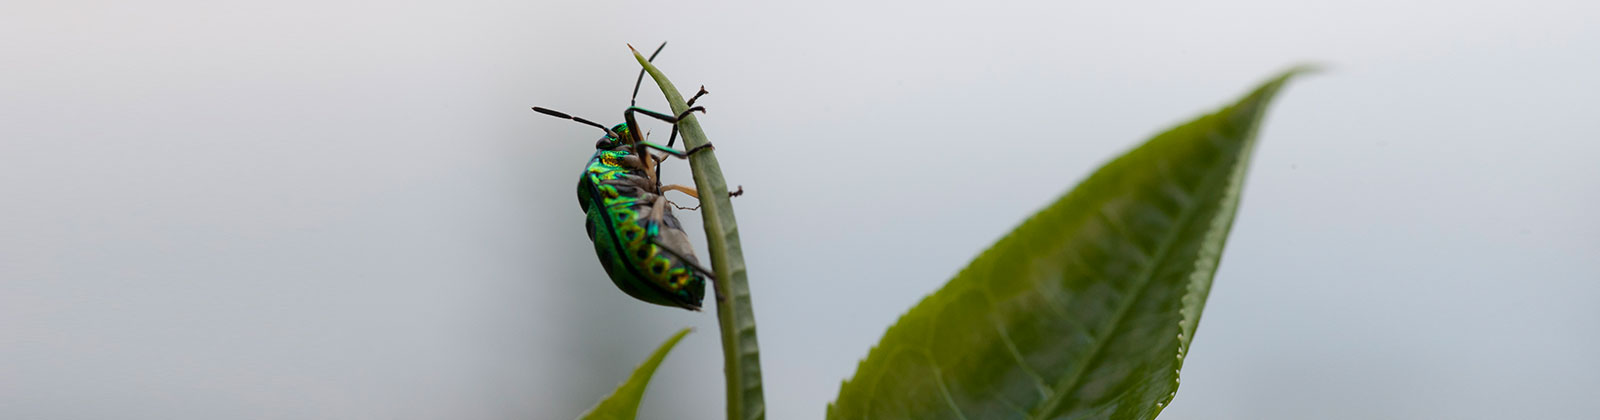 An Insect by a Plant